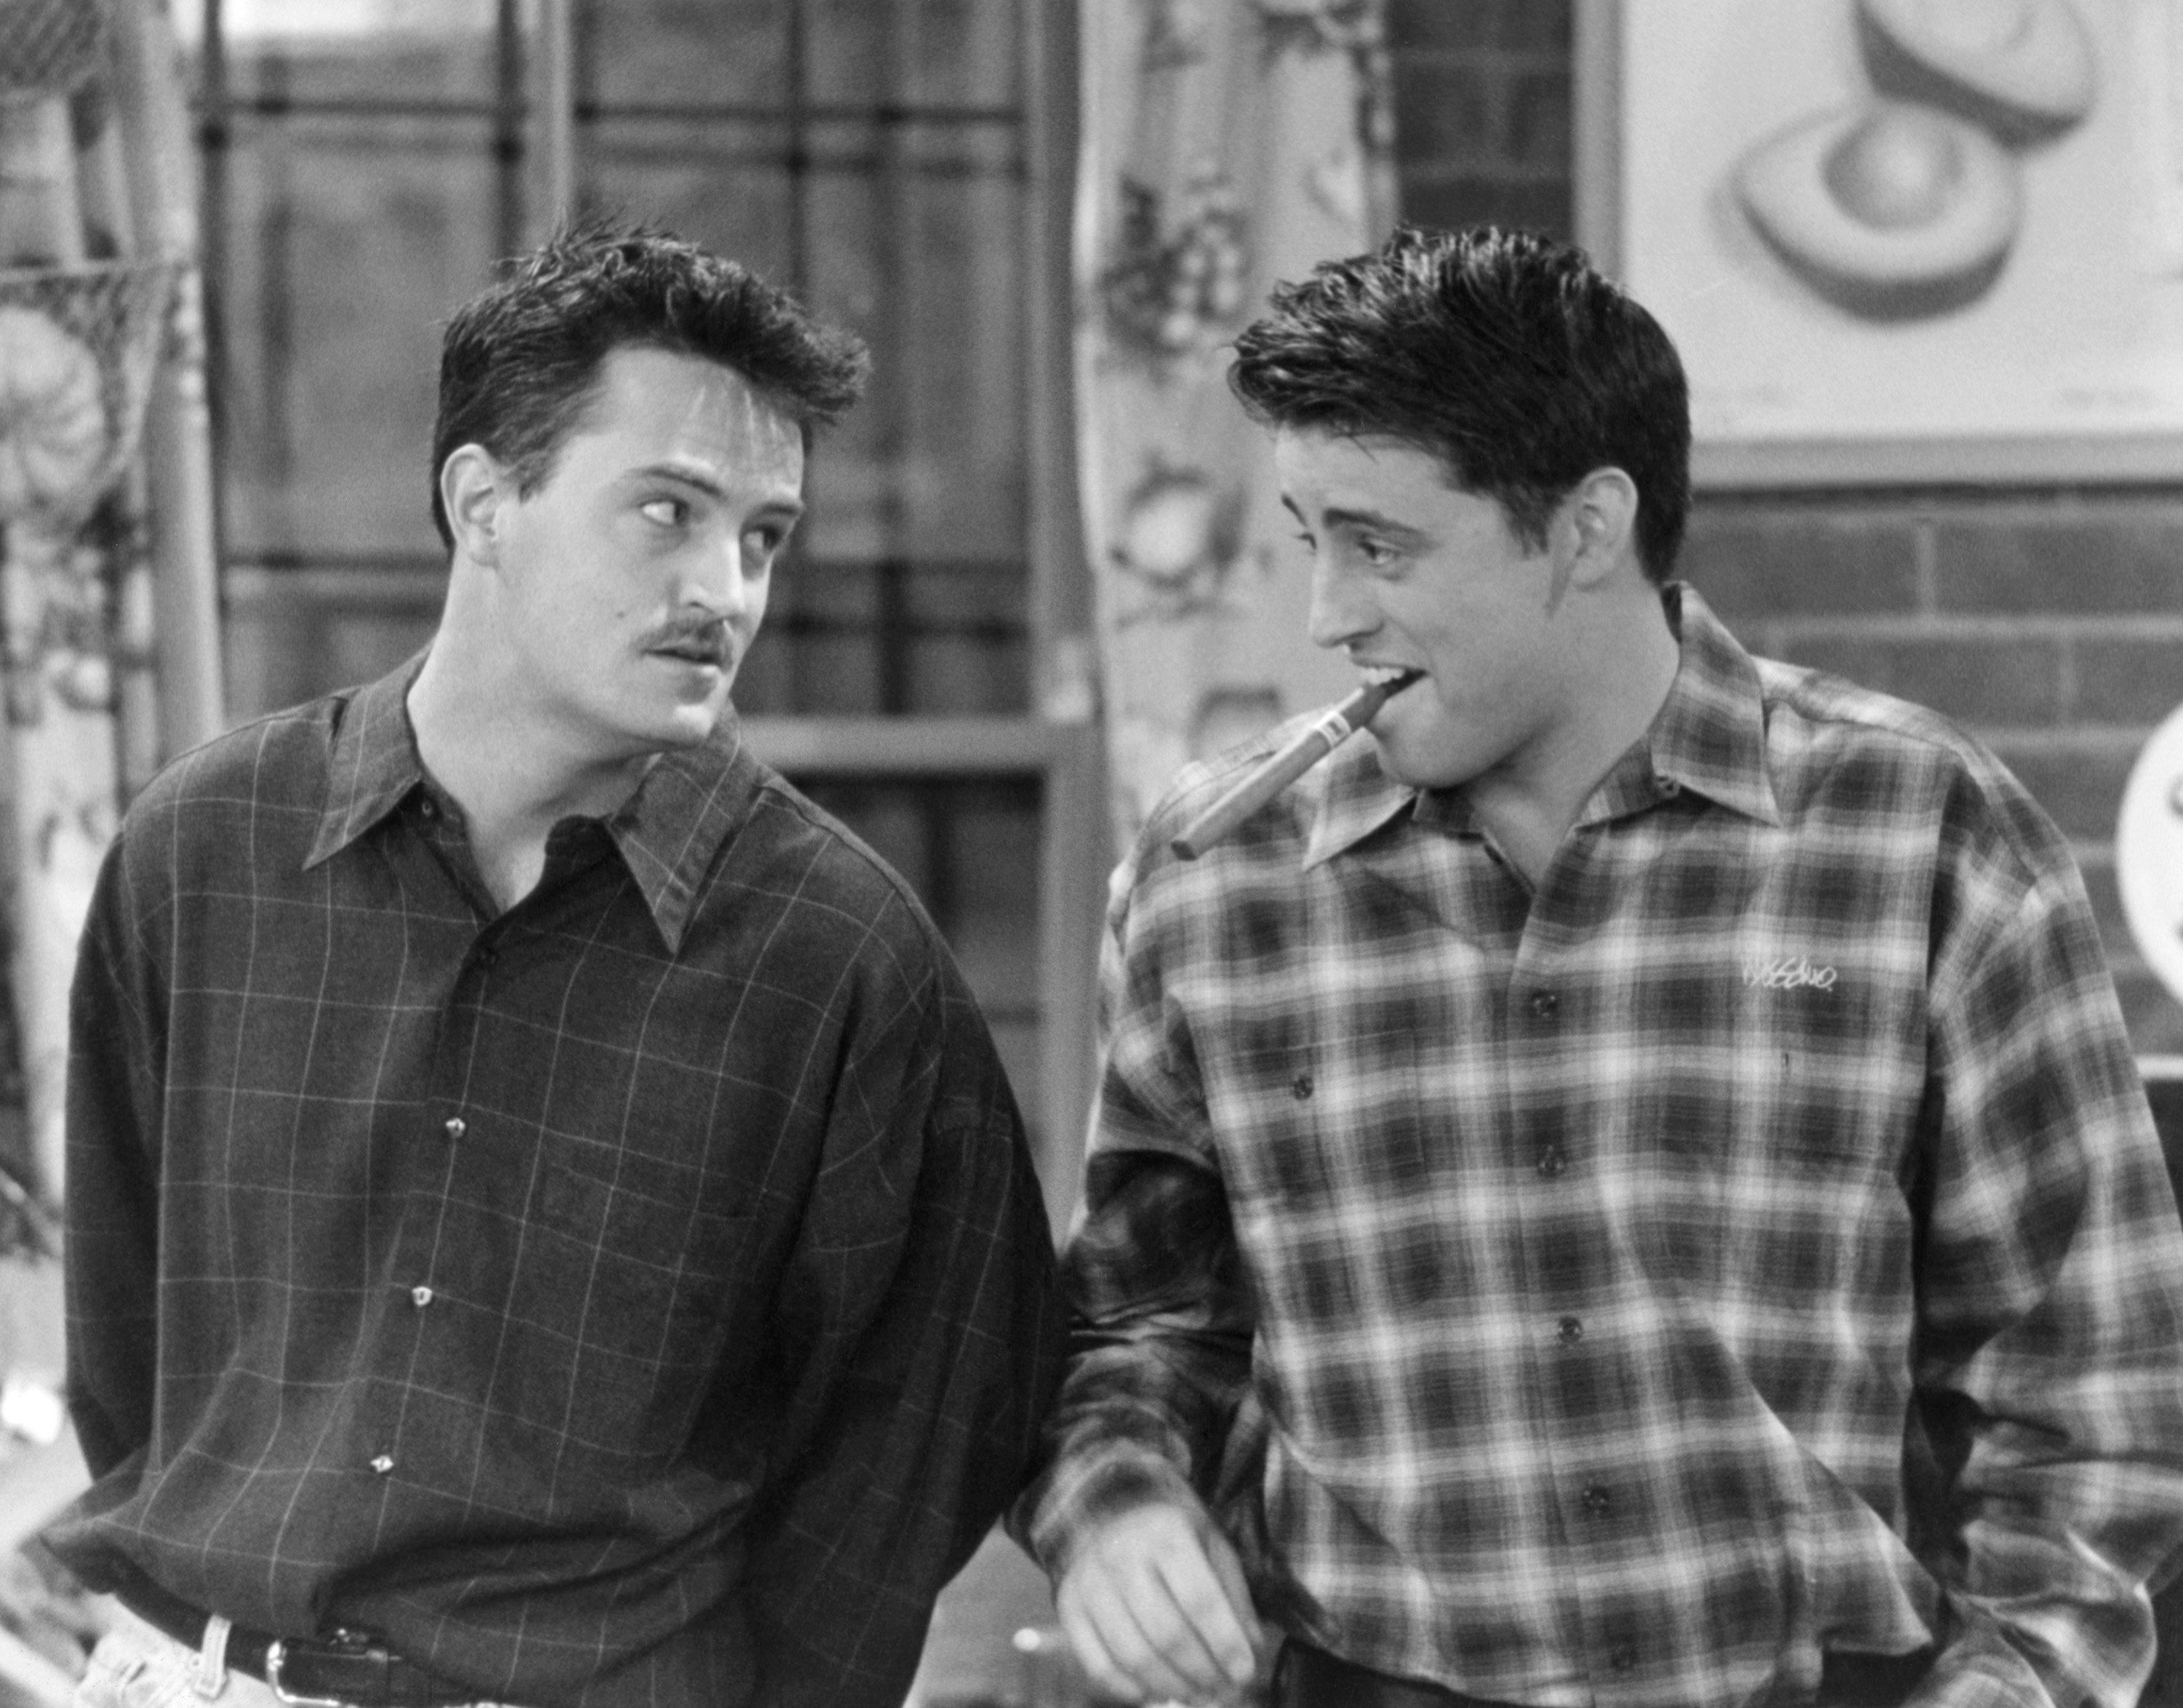 FRIENDS -- 'The One Where Old Yeller Dies' Episode 20 -- Air Date 04/04/1996 -- Pictured: (l-r) Matthew Perry as Chandler Bing, Matt LeBlanc as Joey Tribbiani  (Photo by NBC/NBCU Photo Bank via Getty Images)